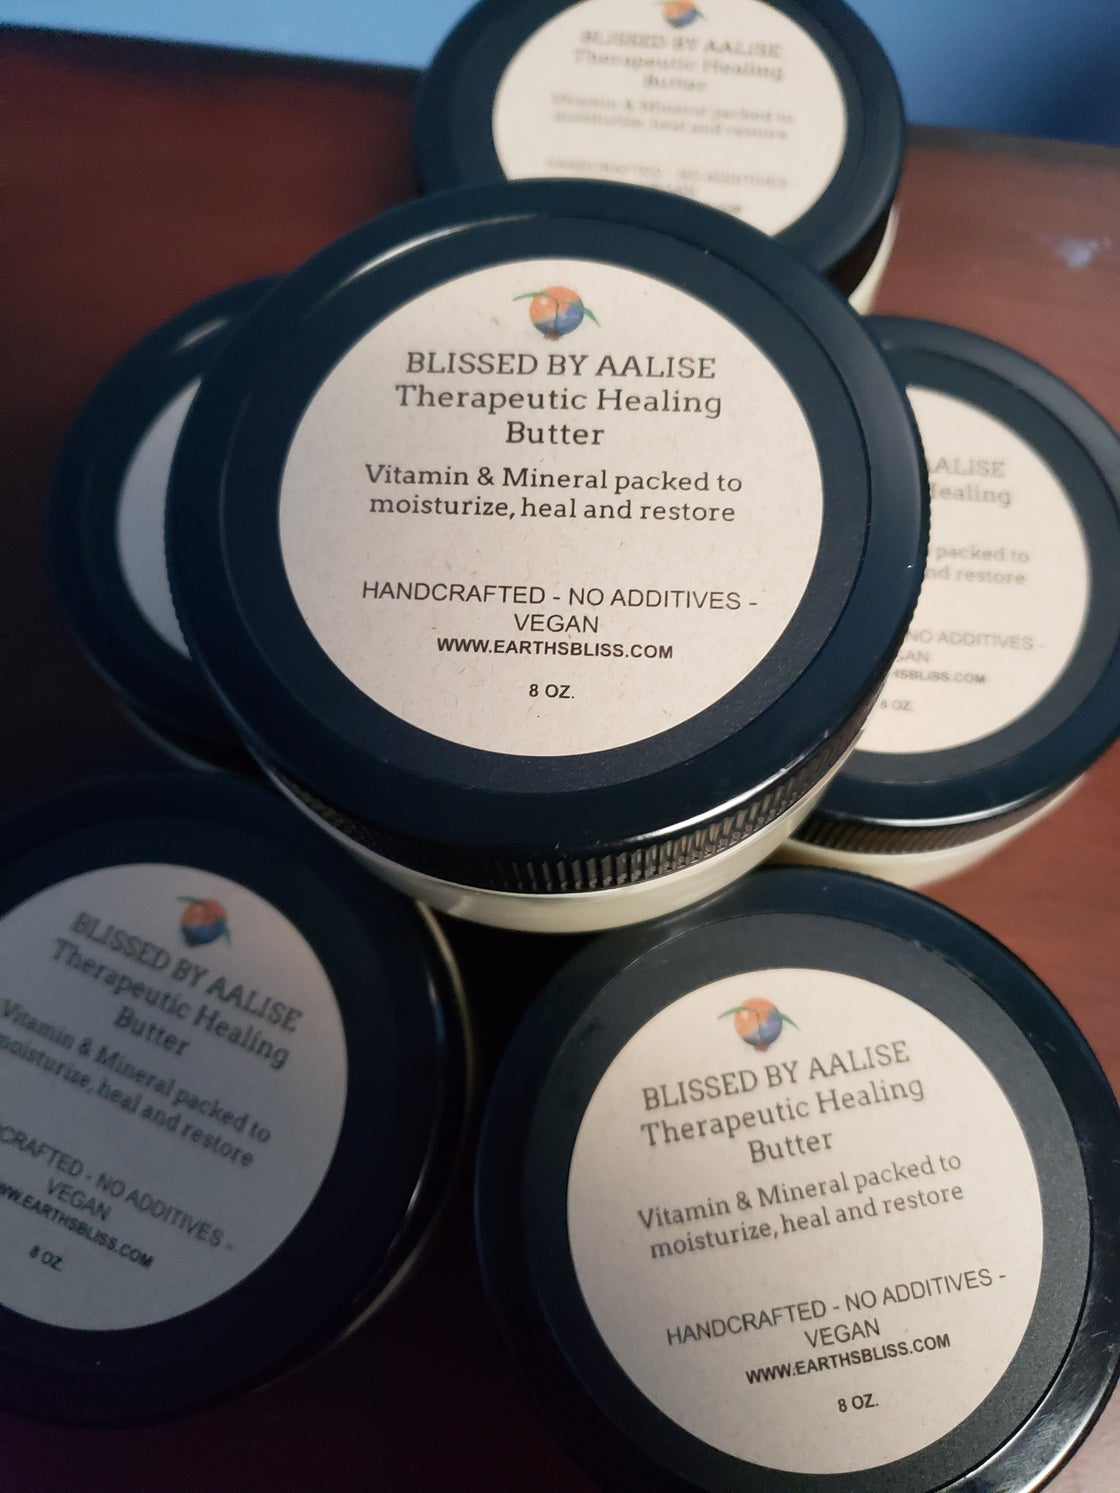 Image of Blissed by Aalise Therapeutic Healing Butter 8oz